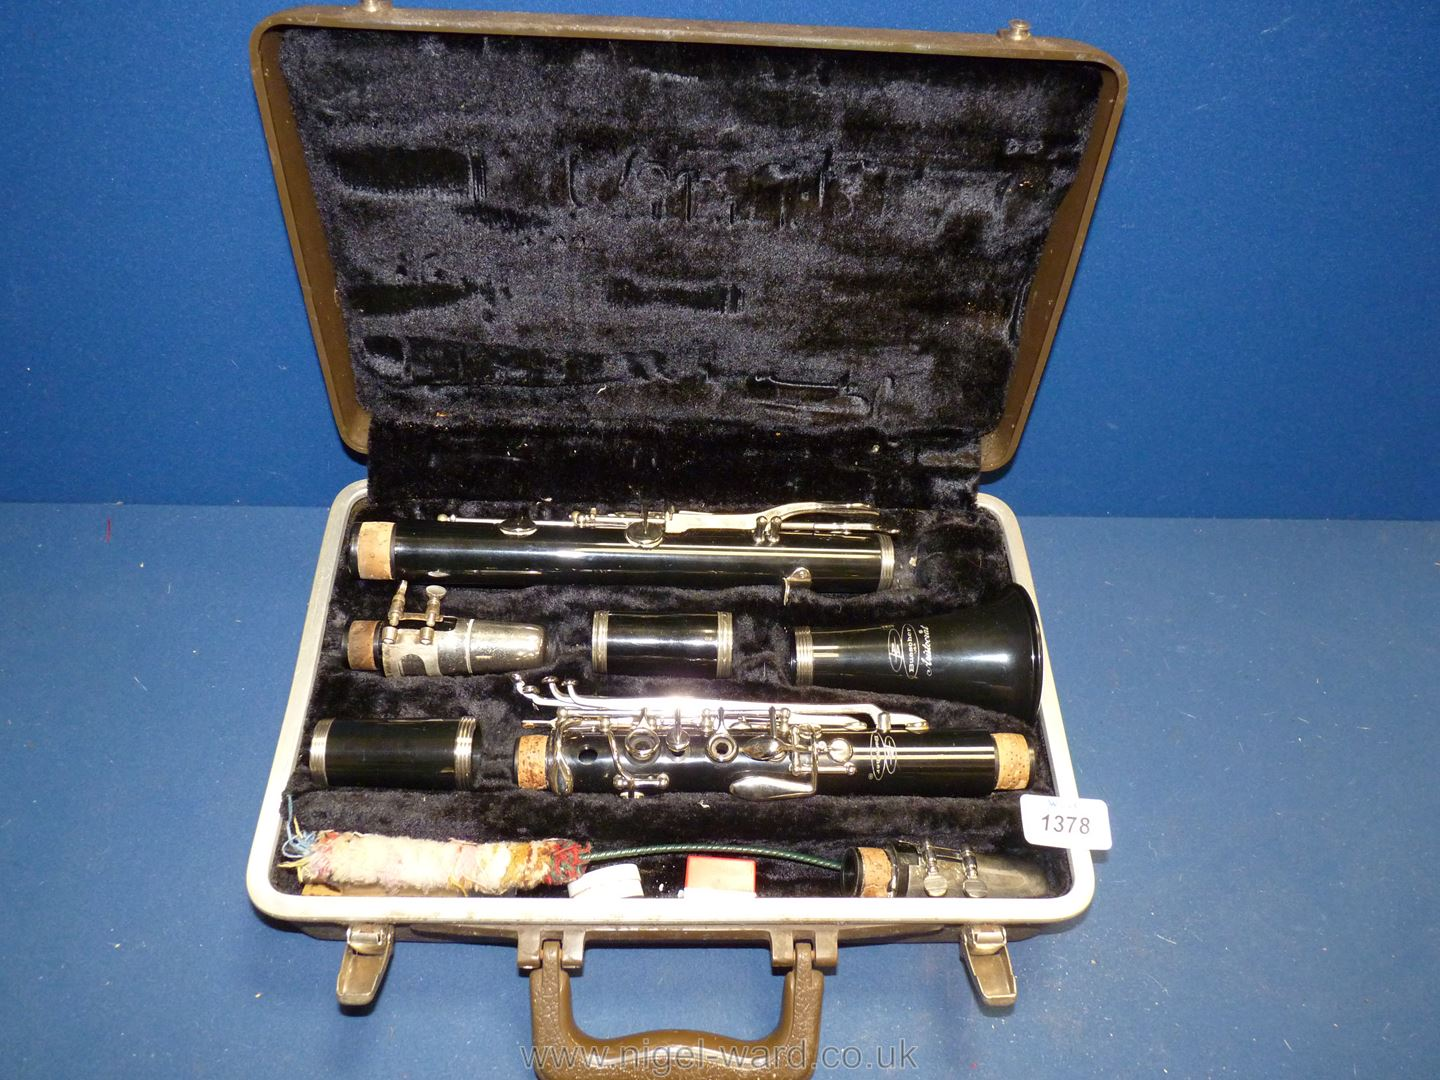 A cased Buescher Aristocrat Clarinet having two mouth pieces, with cleaning rod and reeds. - Image 2 of 2